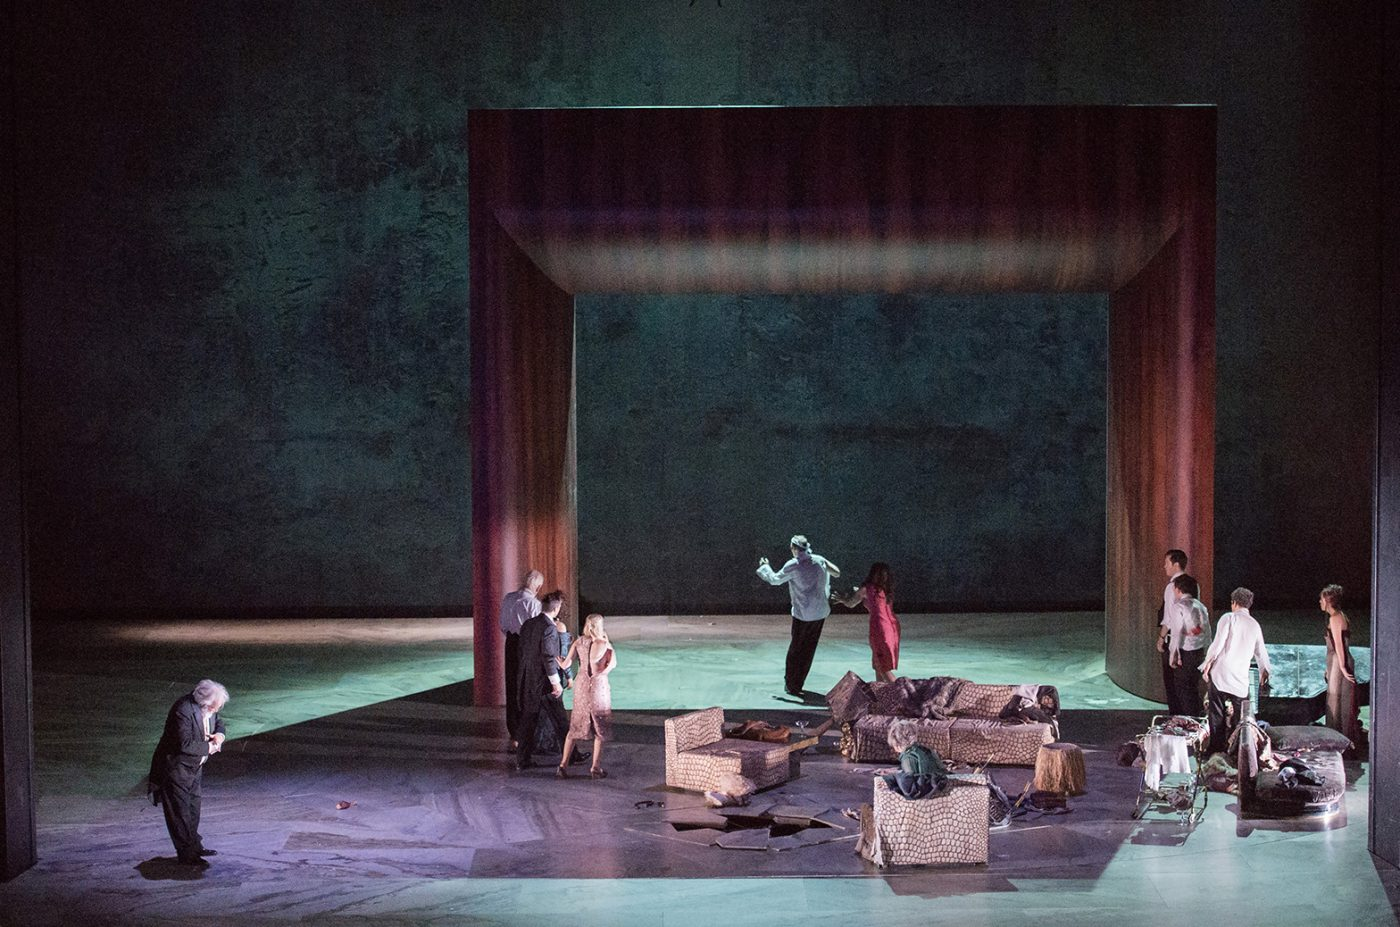 Hildegard Bechtler, The exterminating angel | © Monika Rittershaus